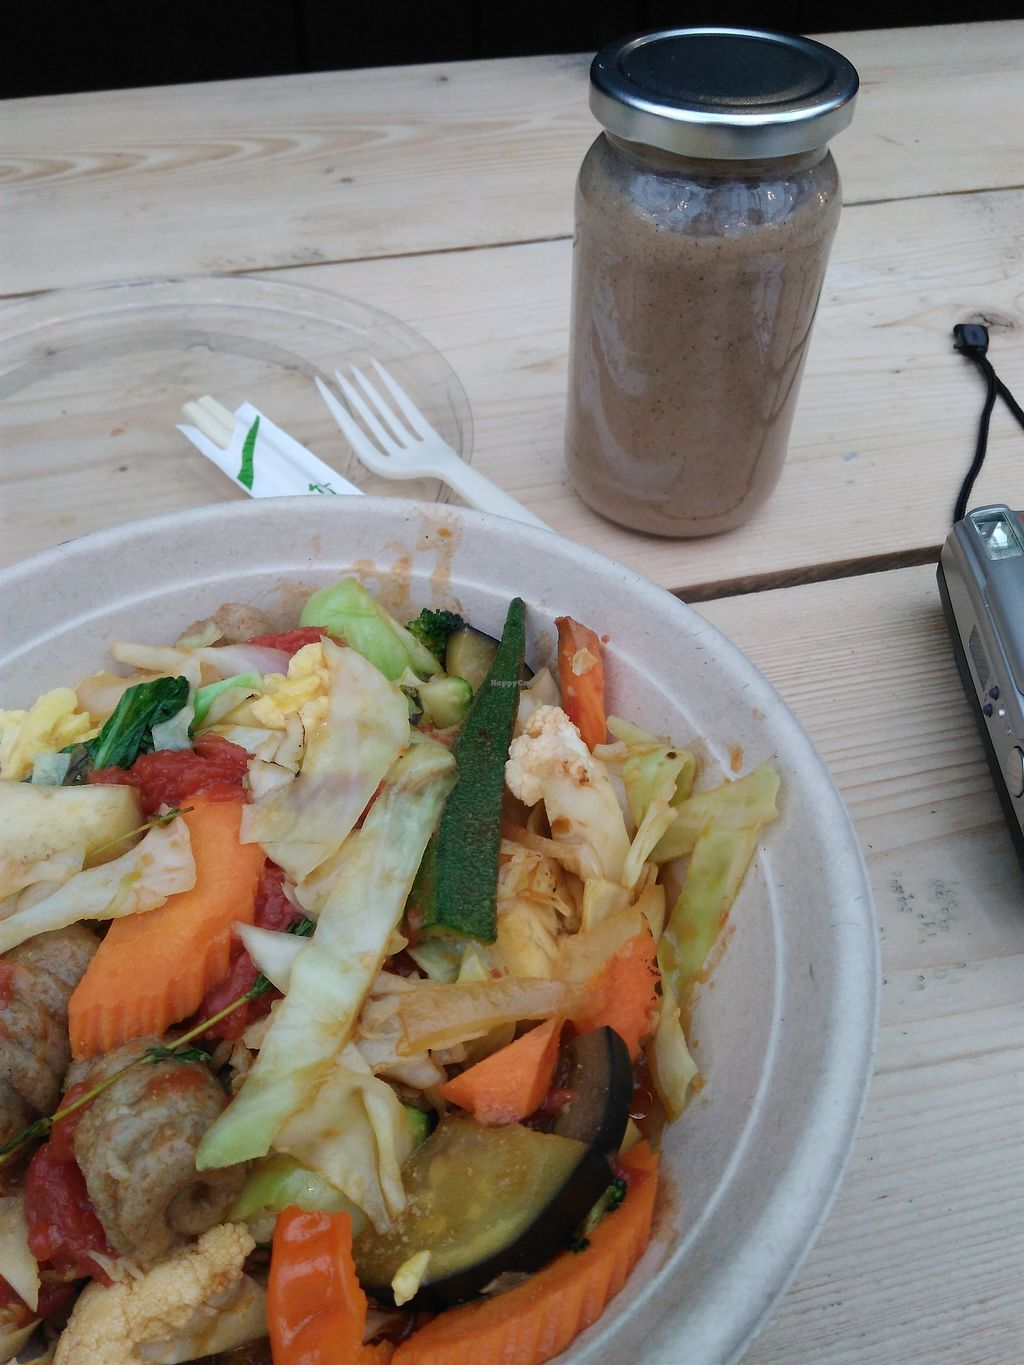 """Photo of CookDaily  by <a href=""""/members/profile/veronikapaz"""">veronikapaz</a> <br/>The Hard Bowl and the banana-cinnamon smoothie <br/> January 28, 2018  - <a href='/contact/abuse/image/57708/351861'>Report</a>"""